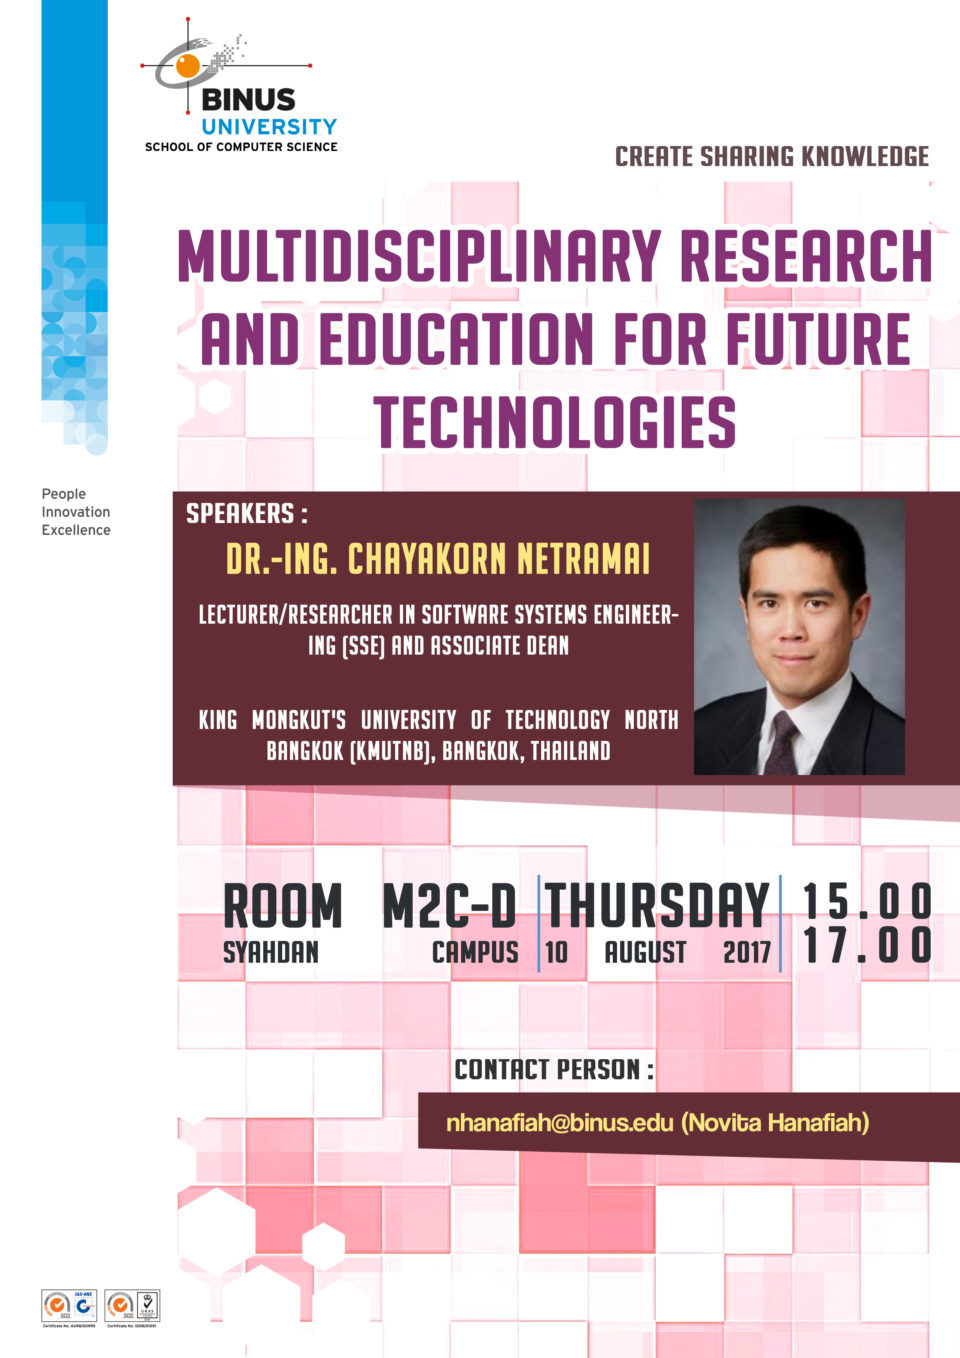 Create Sharing Knowledge : Multidisciplinary Research and Education for Future Technologies